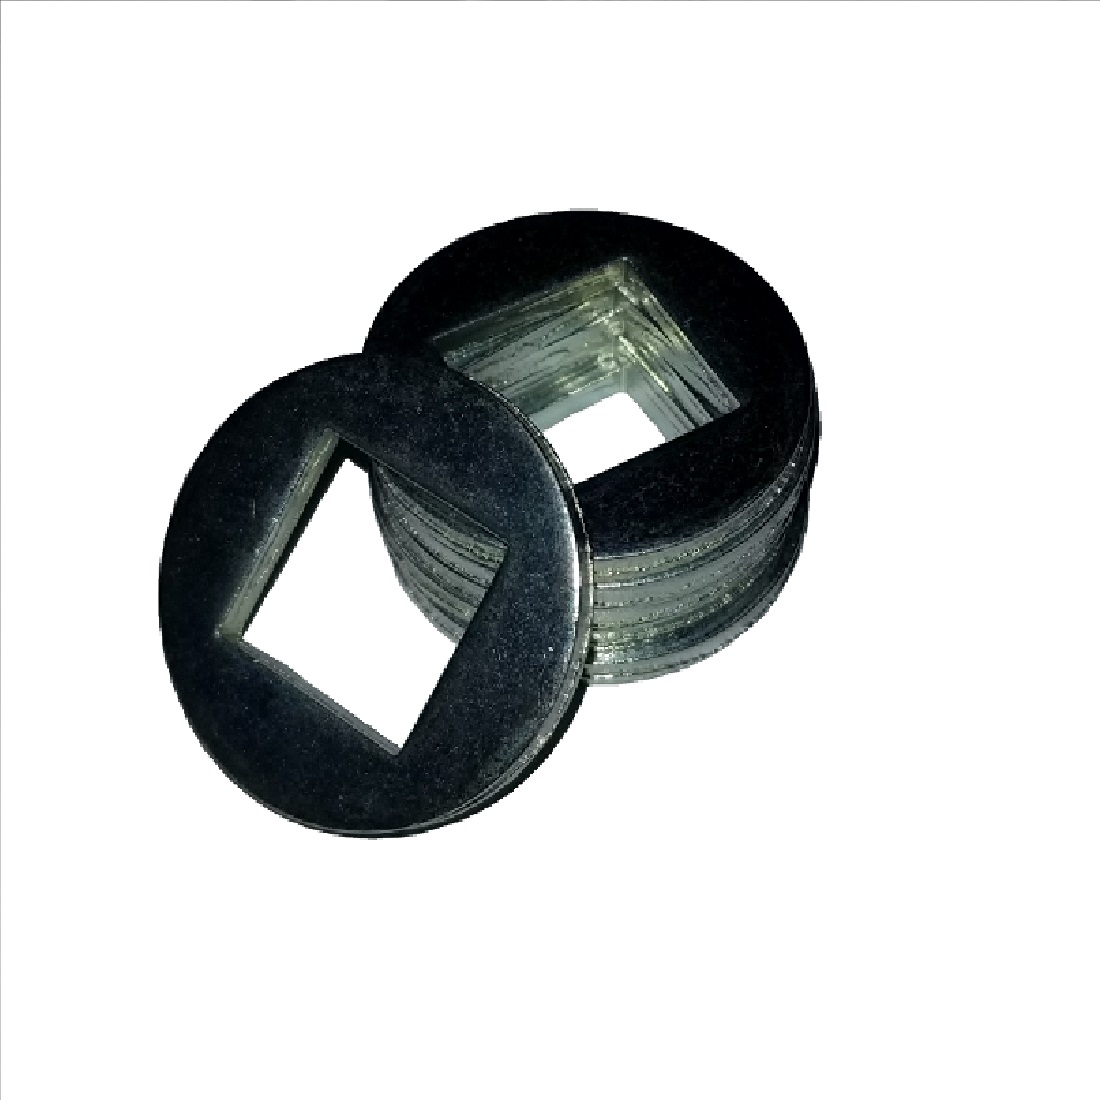 Square ID Washer - 1.260 ID, 2.750 OD, 0.188 Thick, Low Carbon Steel - Soft